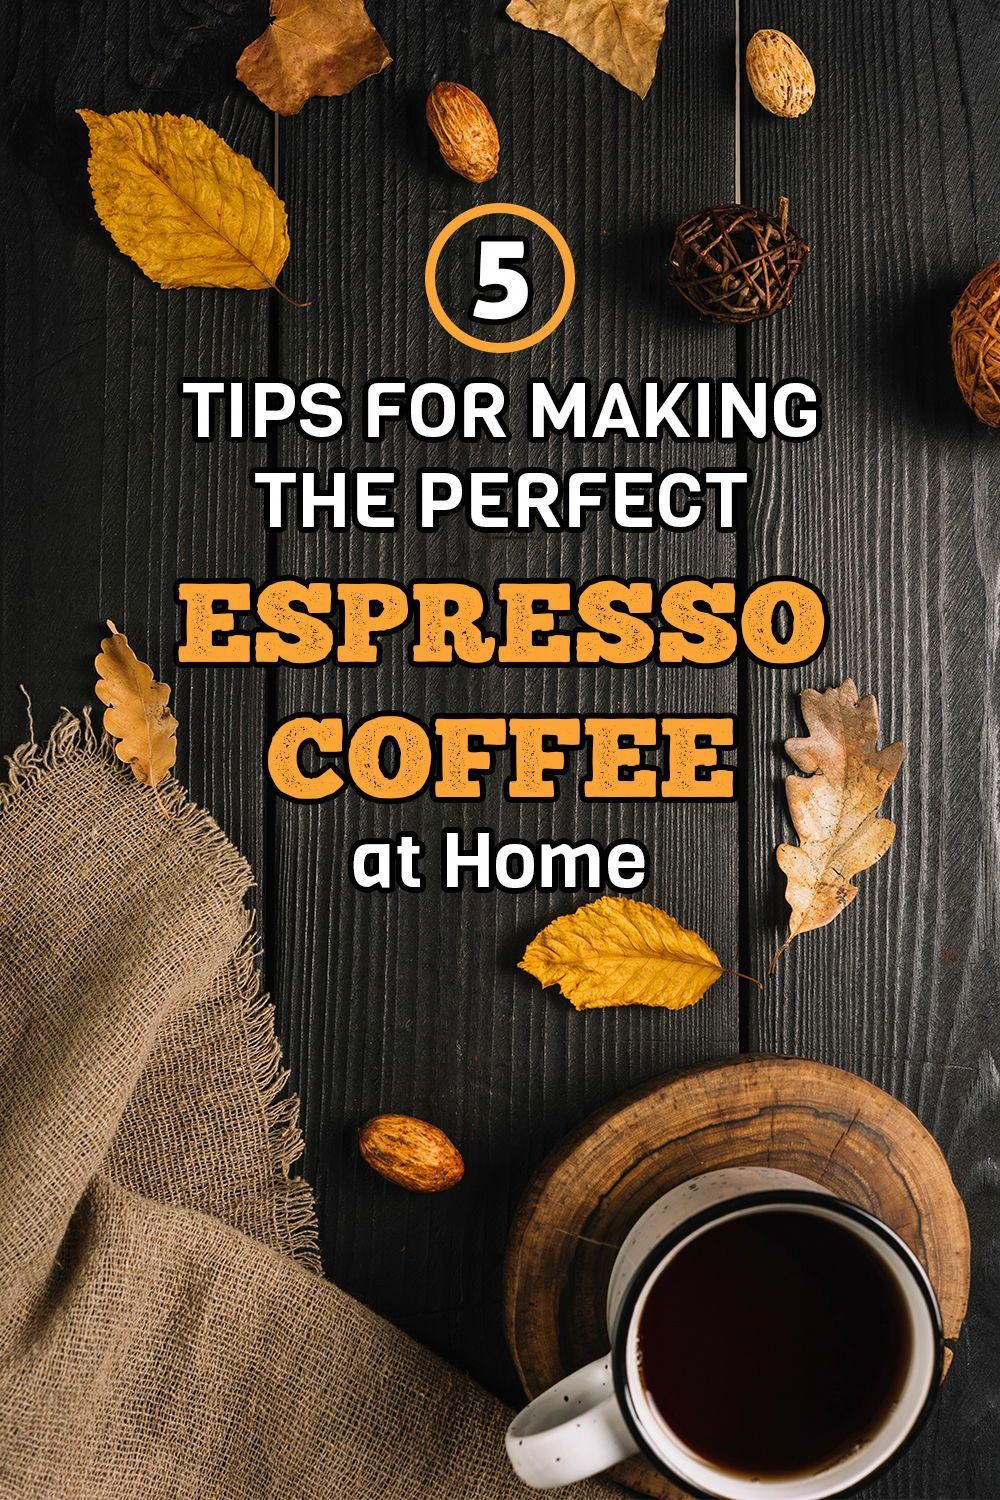 espresso making tips, how to make espresso coffee at home, how to make espresso with a french press, how to make the perfect espresso, how to make espresso in a french press, how to make espresso french press, espresso tips, espresso crema tips, espresso coffee at home, make espresso with french press, can you make espresso in a french press, how to make the best espresso at home, make espresso french press, the best espresso coffee, how to make perfect es #espressoathome